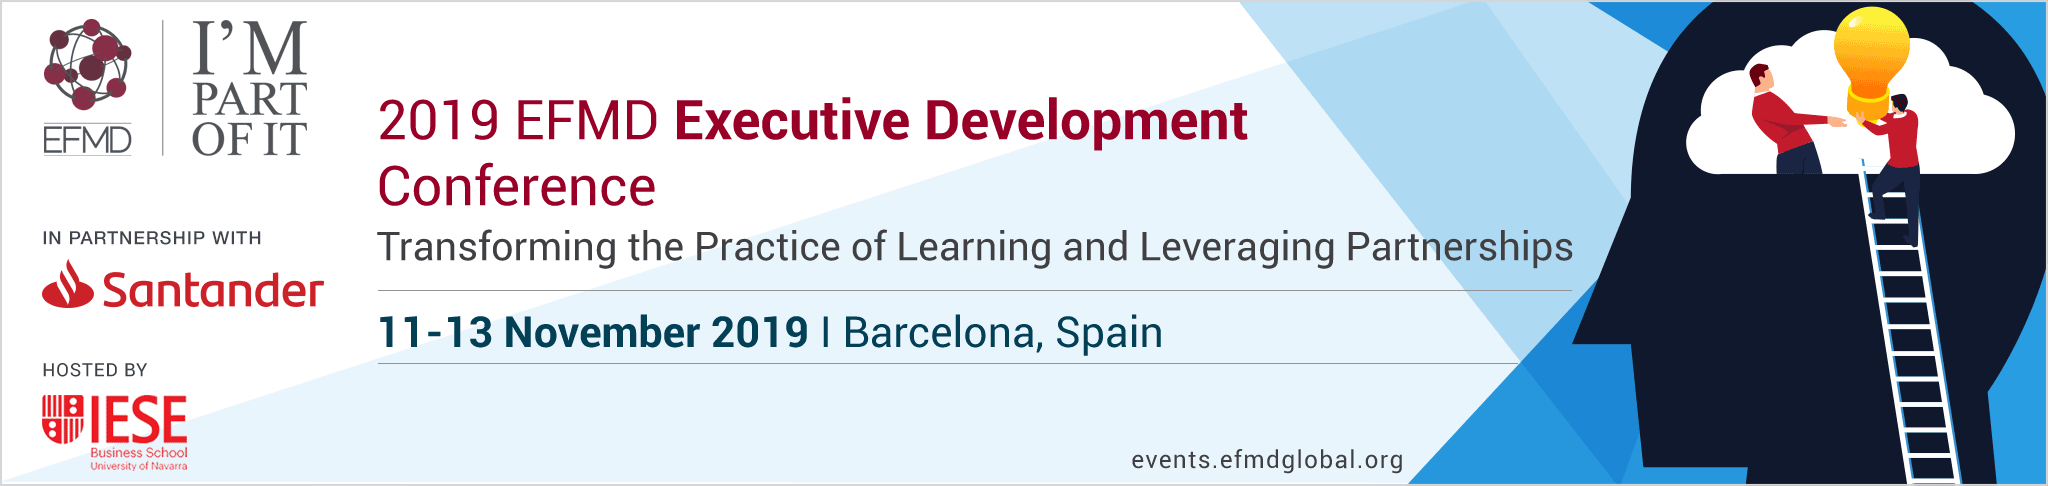 2019 EFMD Executive Development Conference - IESE Business School, University of Navarra - Barcelona - Spain - Monday 11  › Wednesday 13 November 2019